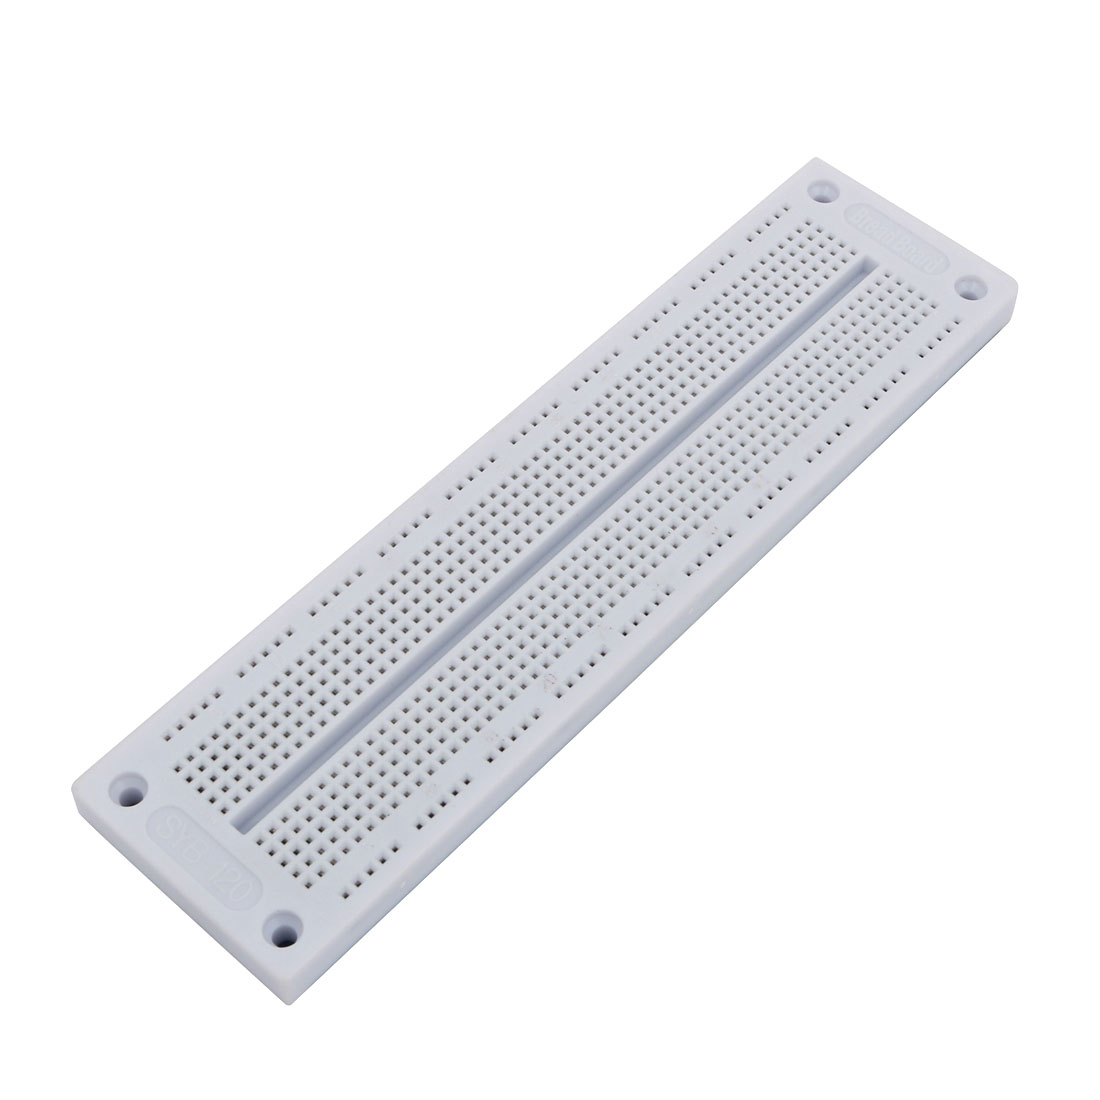 White Plastic 700 Tiepoint Test Develop DIY PCB Solderless Bread Board SYB-120